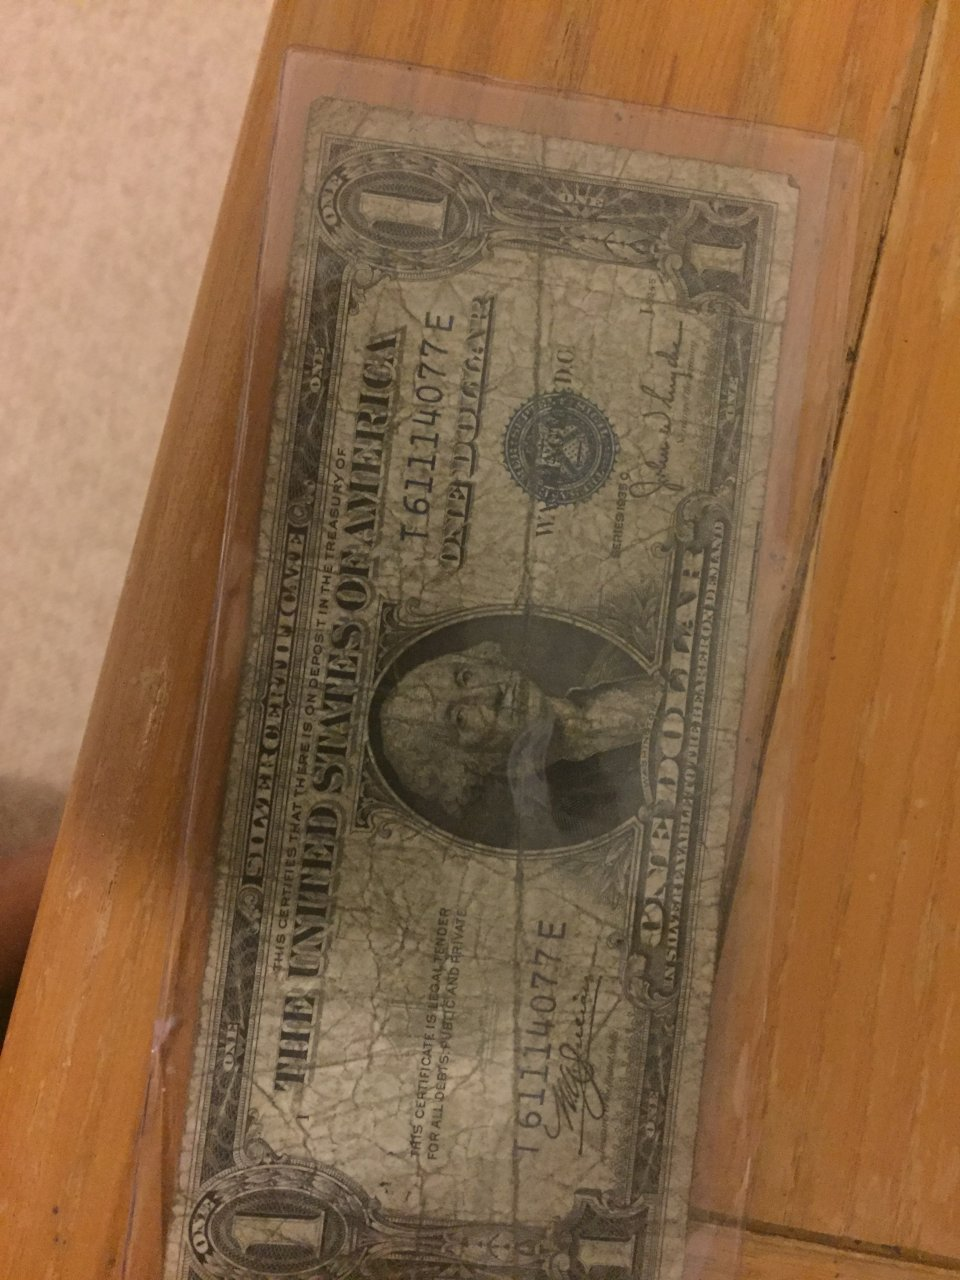 Series 1935c one dollar bill silver certificate t 61114077e i series 1935c one dollar bill silver certificate t 61114077e i need to know the value please xflitez Gallery